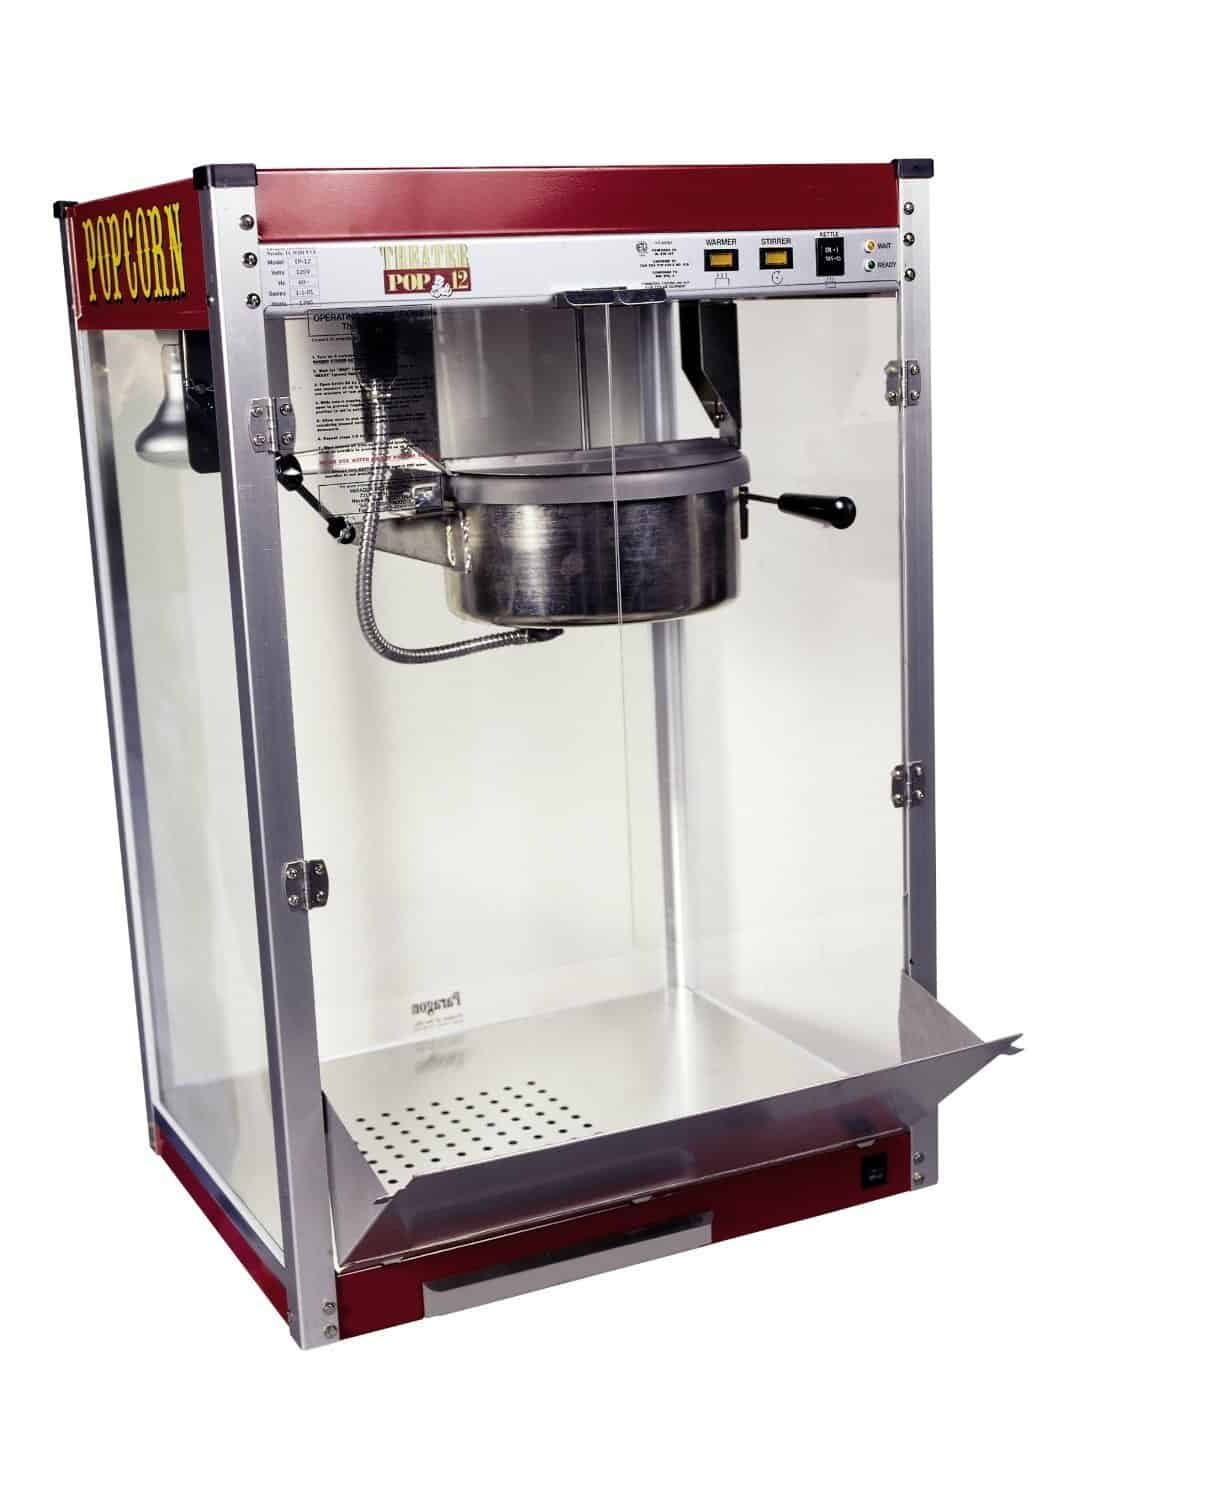 Heavy-duty Popcorn maker